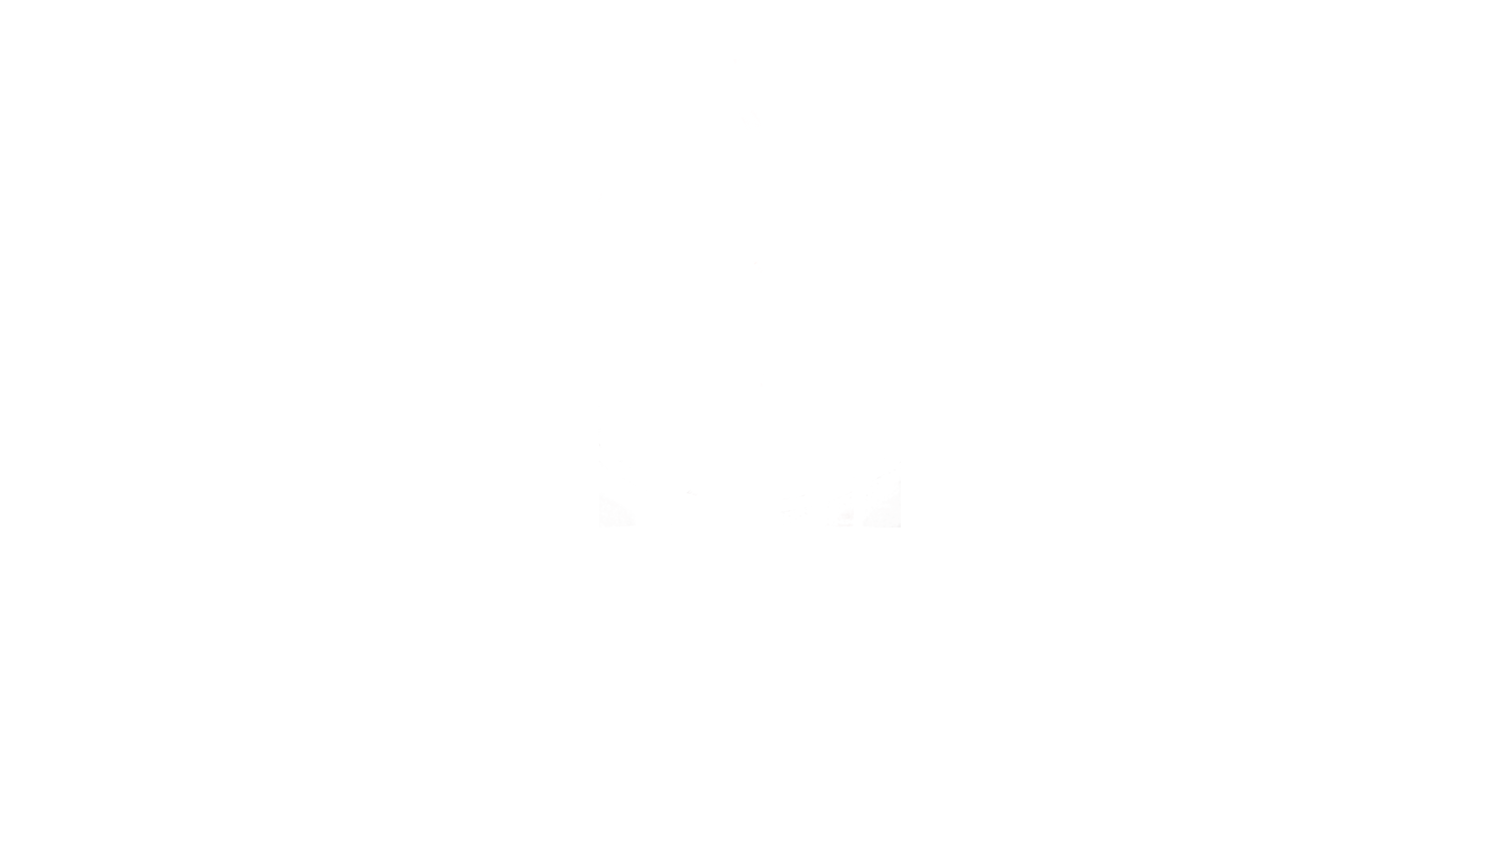 Lexington Avenue Baptist Church